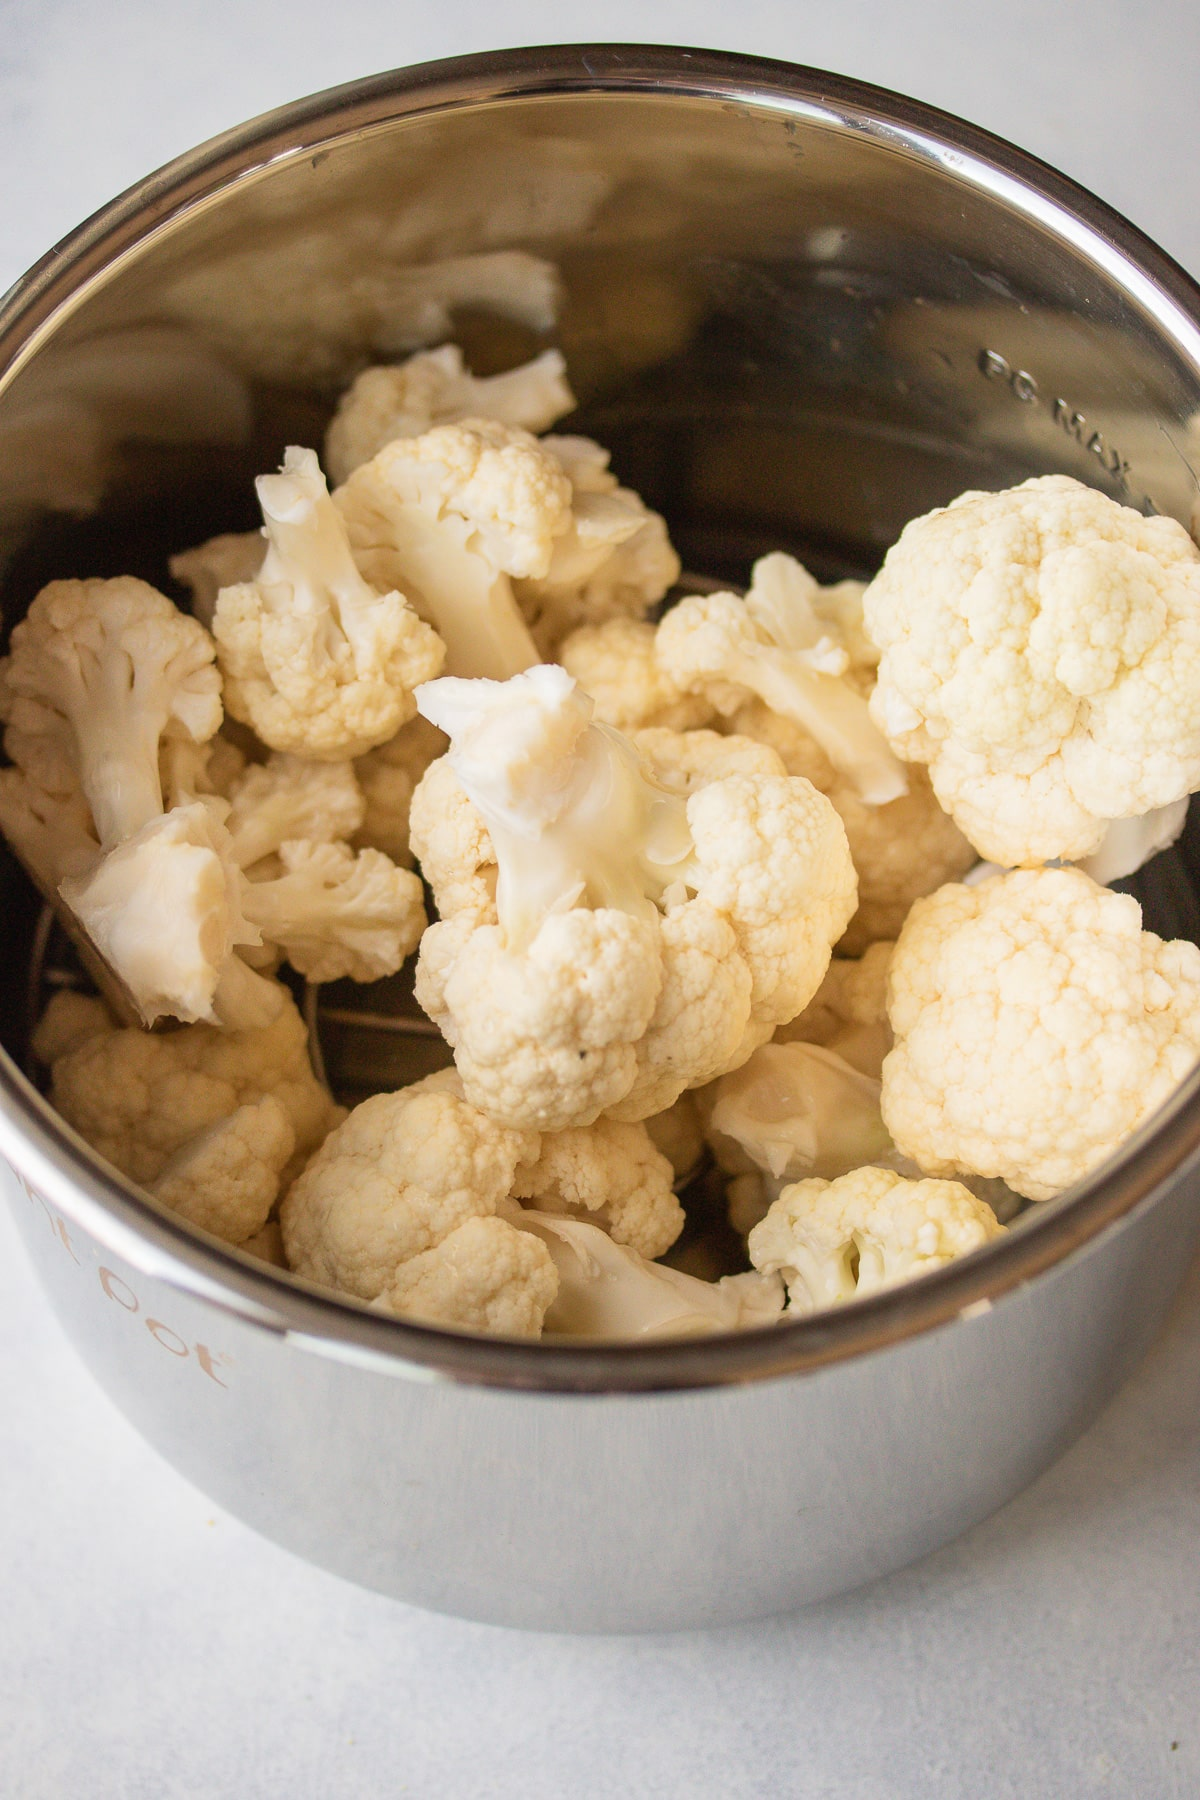 cauliflower florets in the base of a pressure cooker ready to be cooked